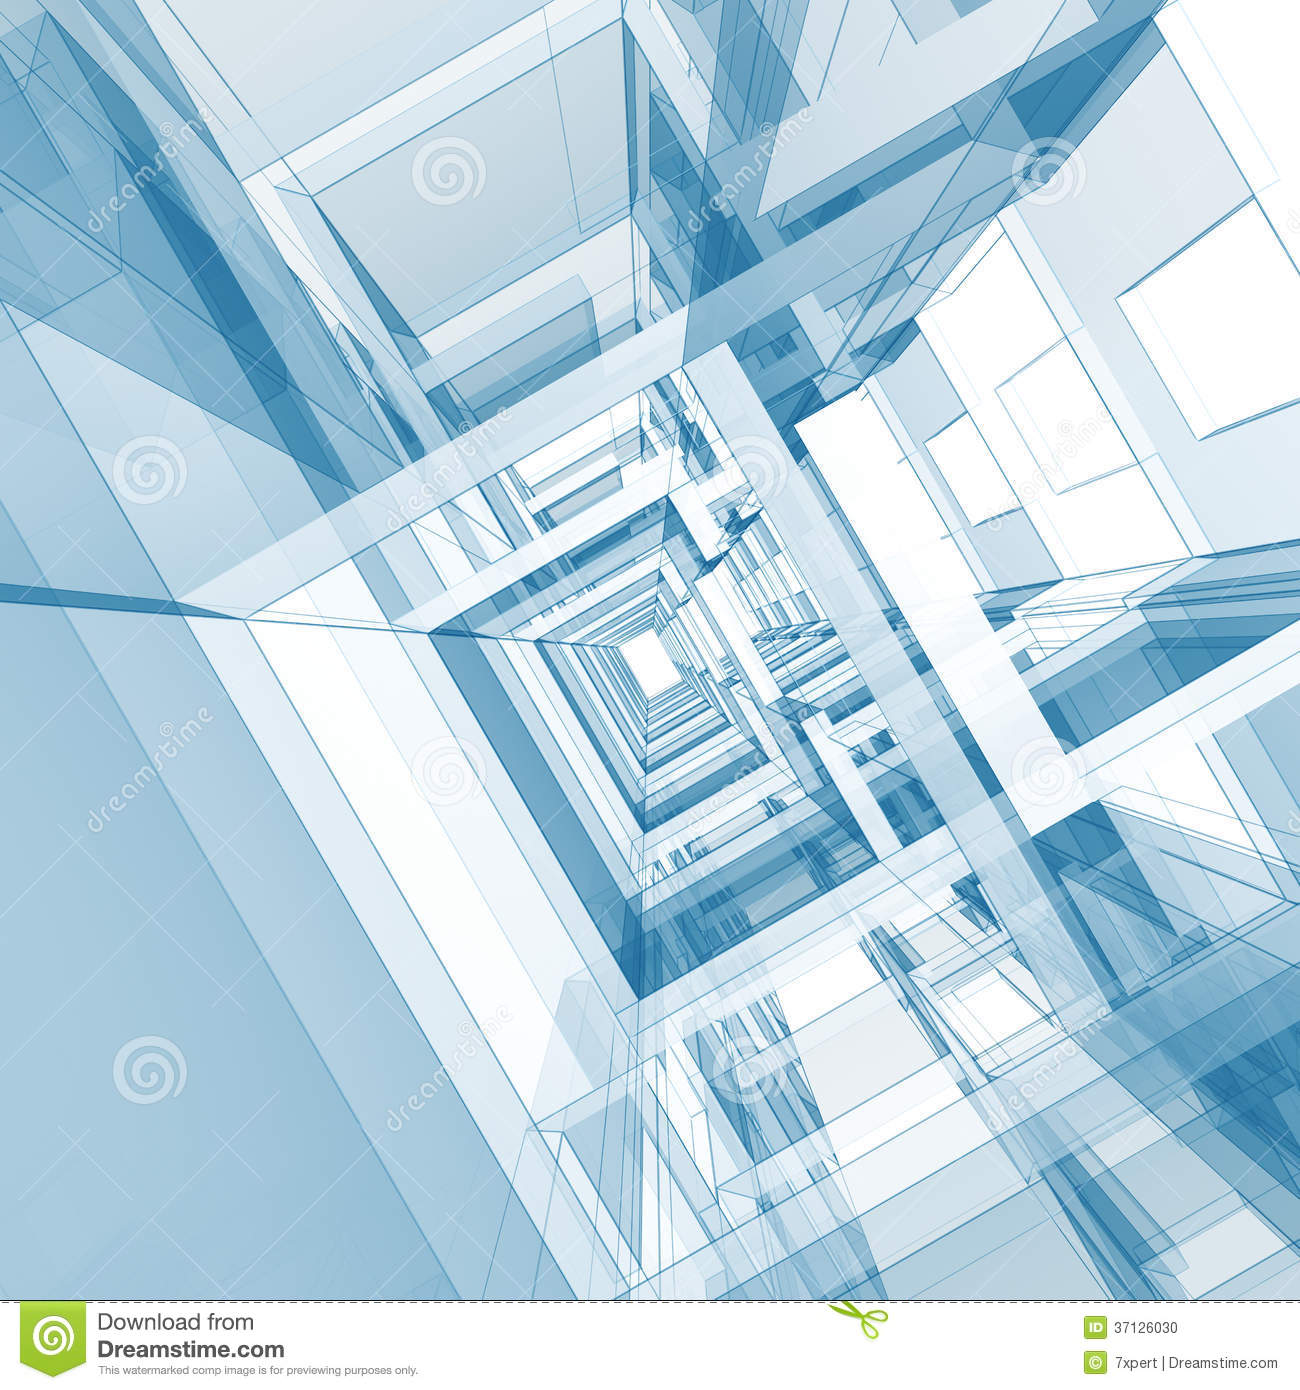 Abstract architecture background stock photo image 37126030 for Architecture and design